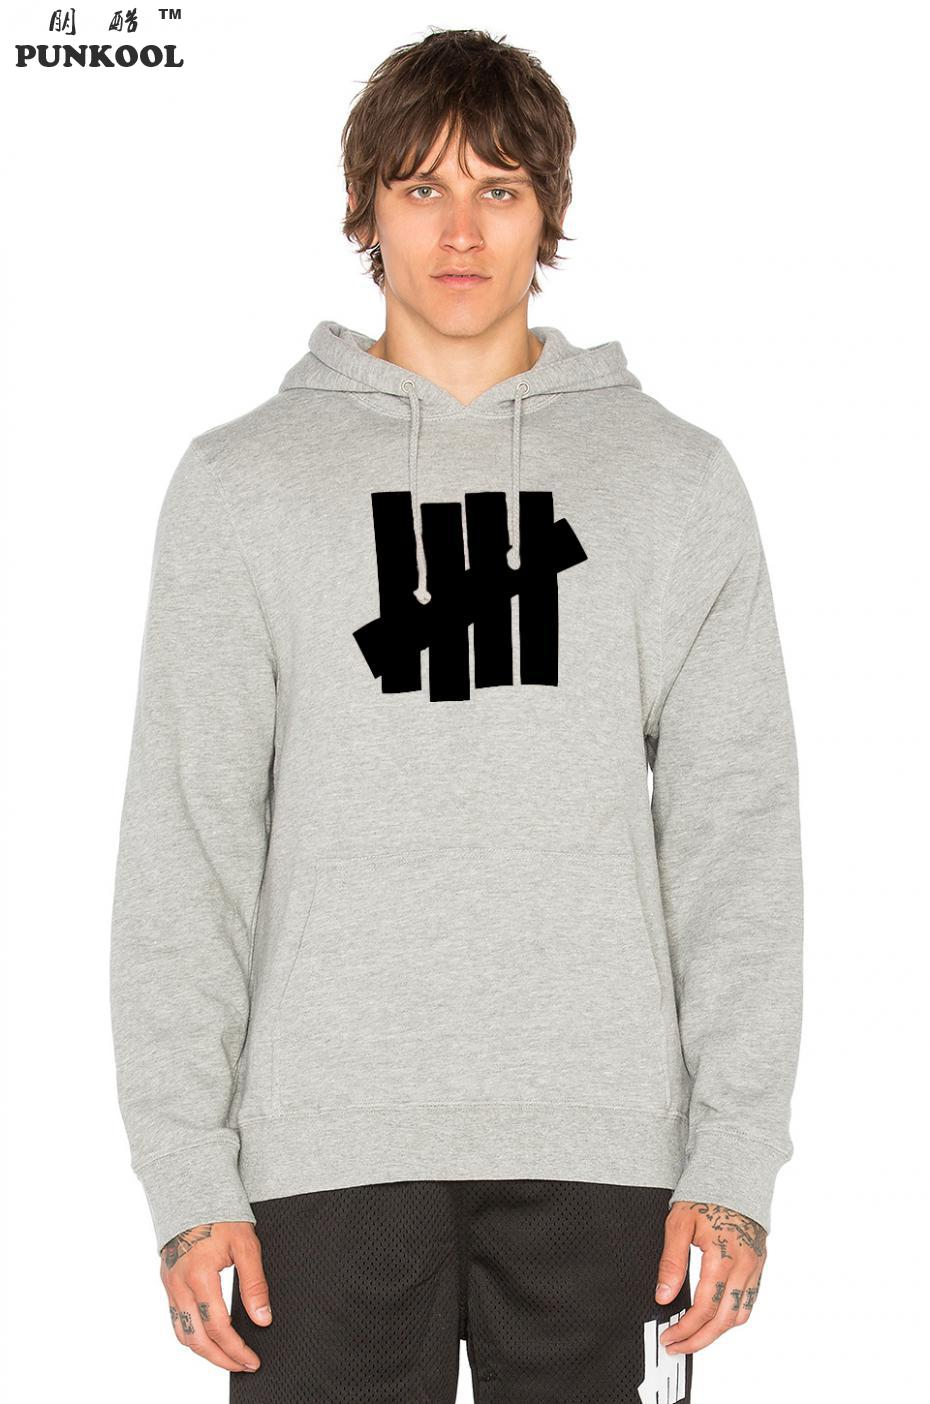 Undefeated hoodies